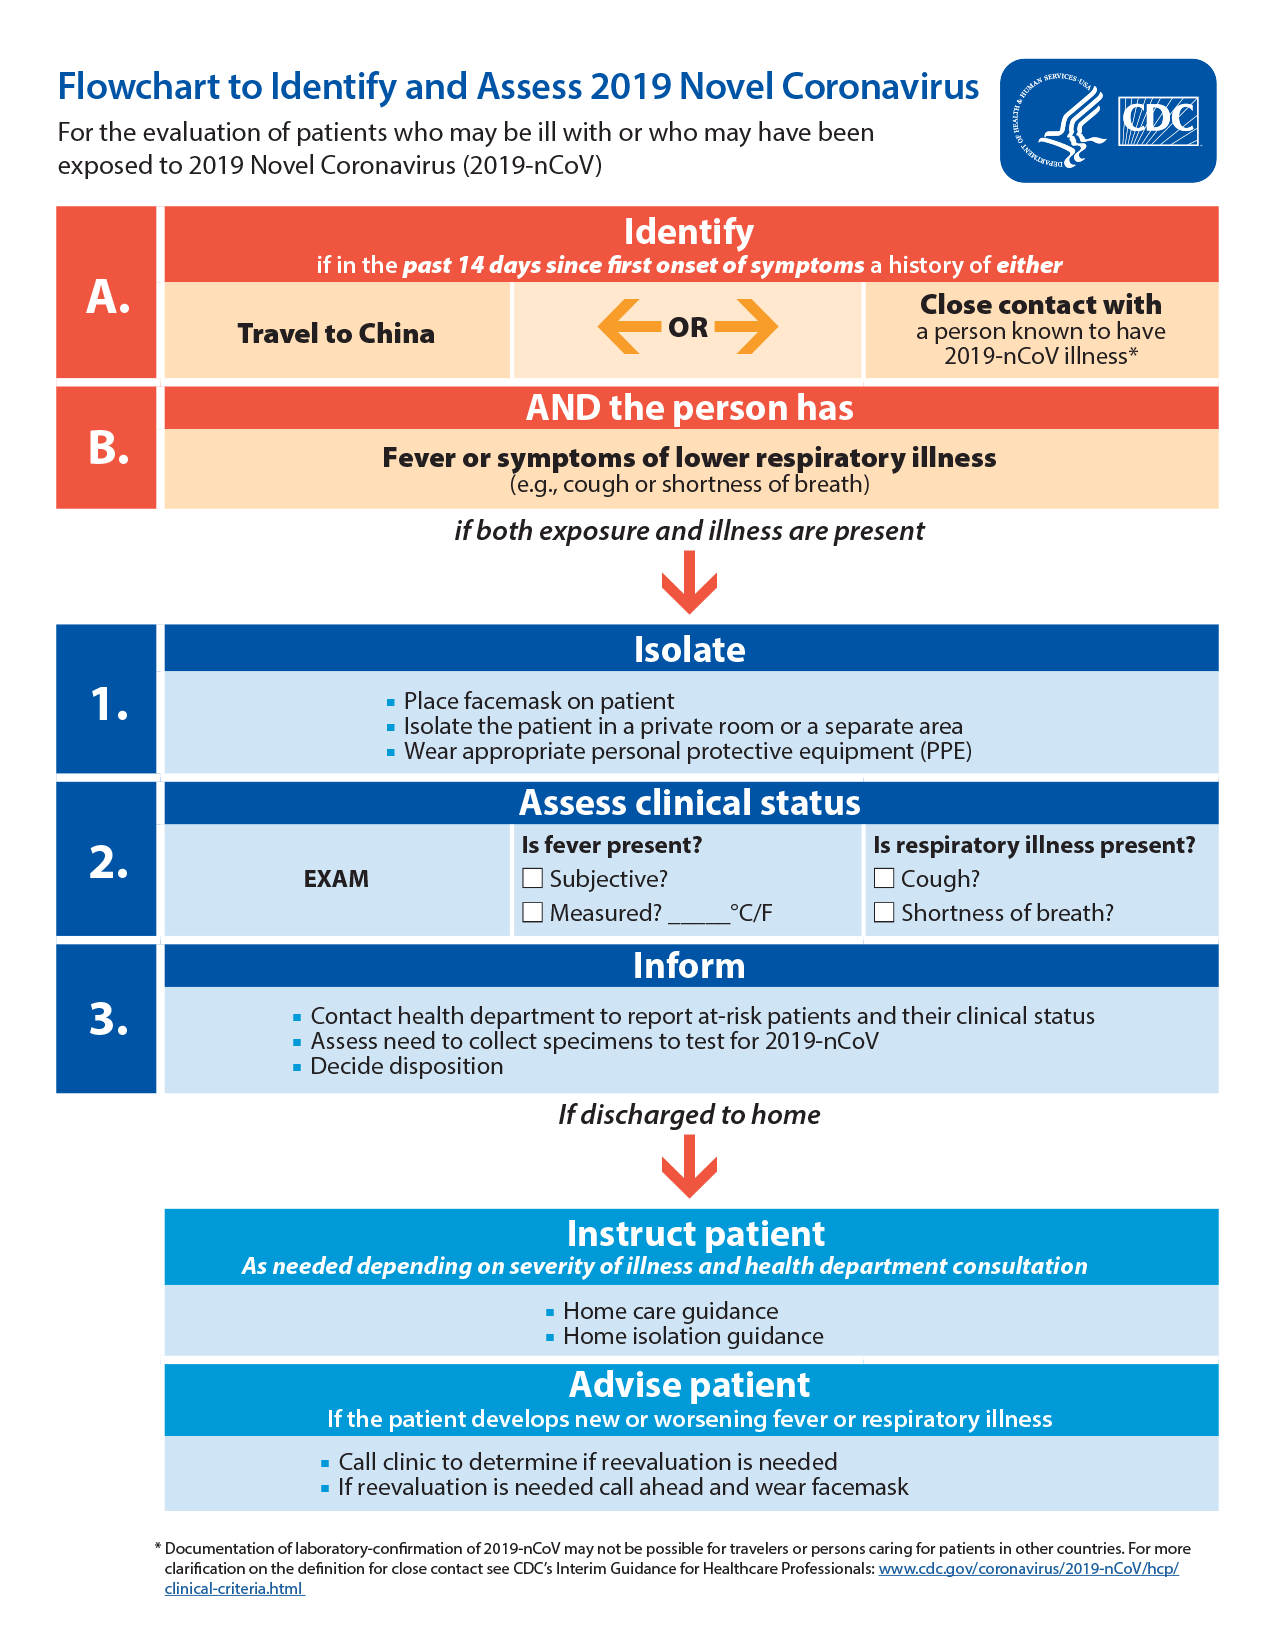 Flowchart to Identify and Assess 2019 Novel Coronavirus